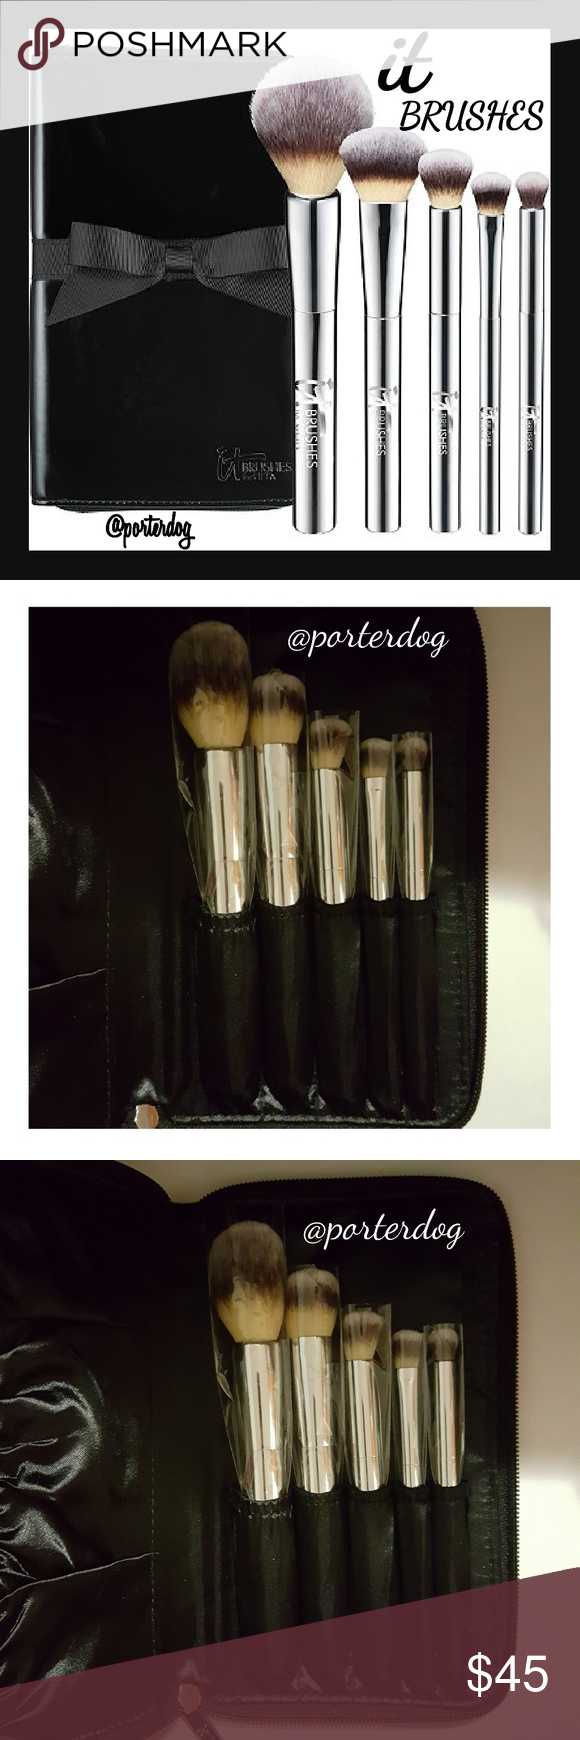 IT BRUSHES FOR ULTA 5 Piece Set NWT Ulta makeup brushes